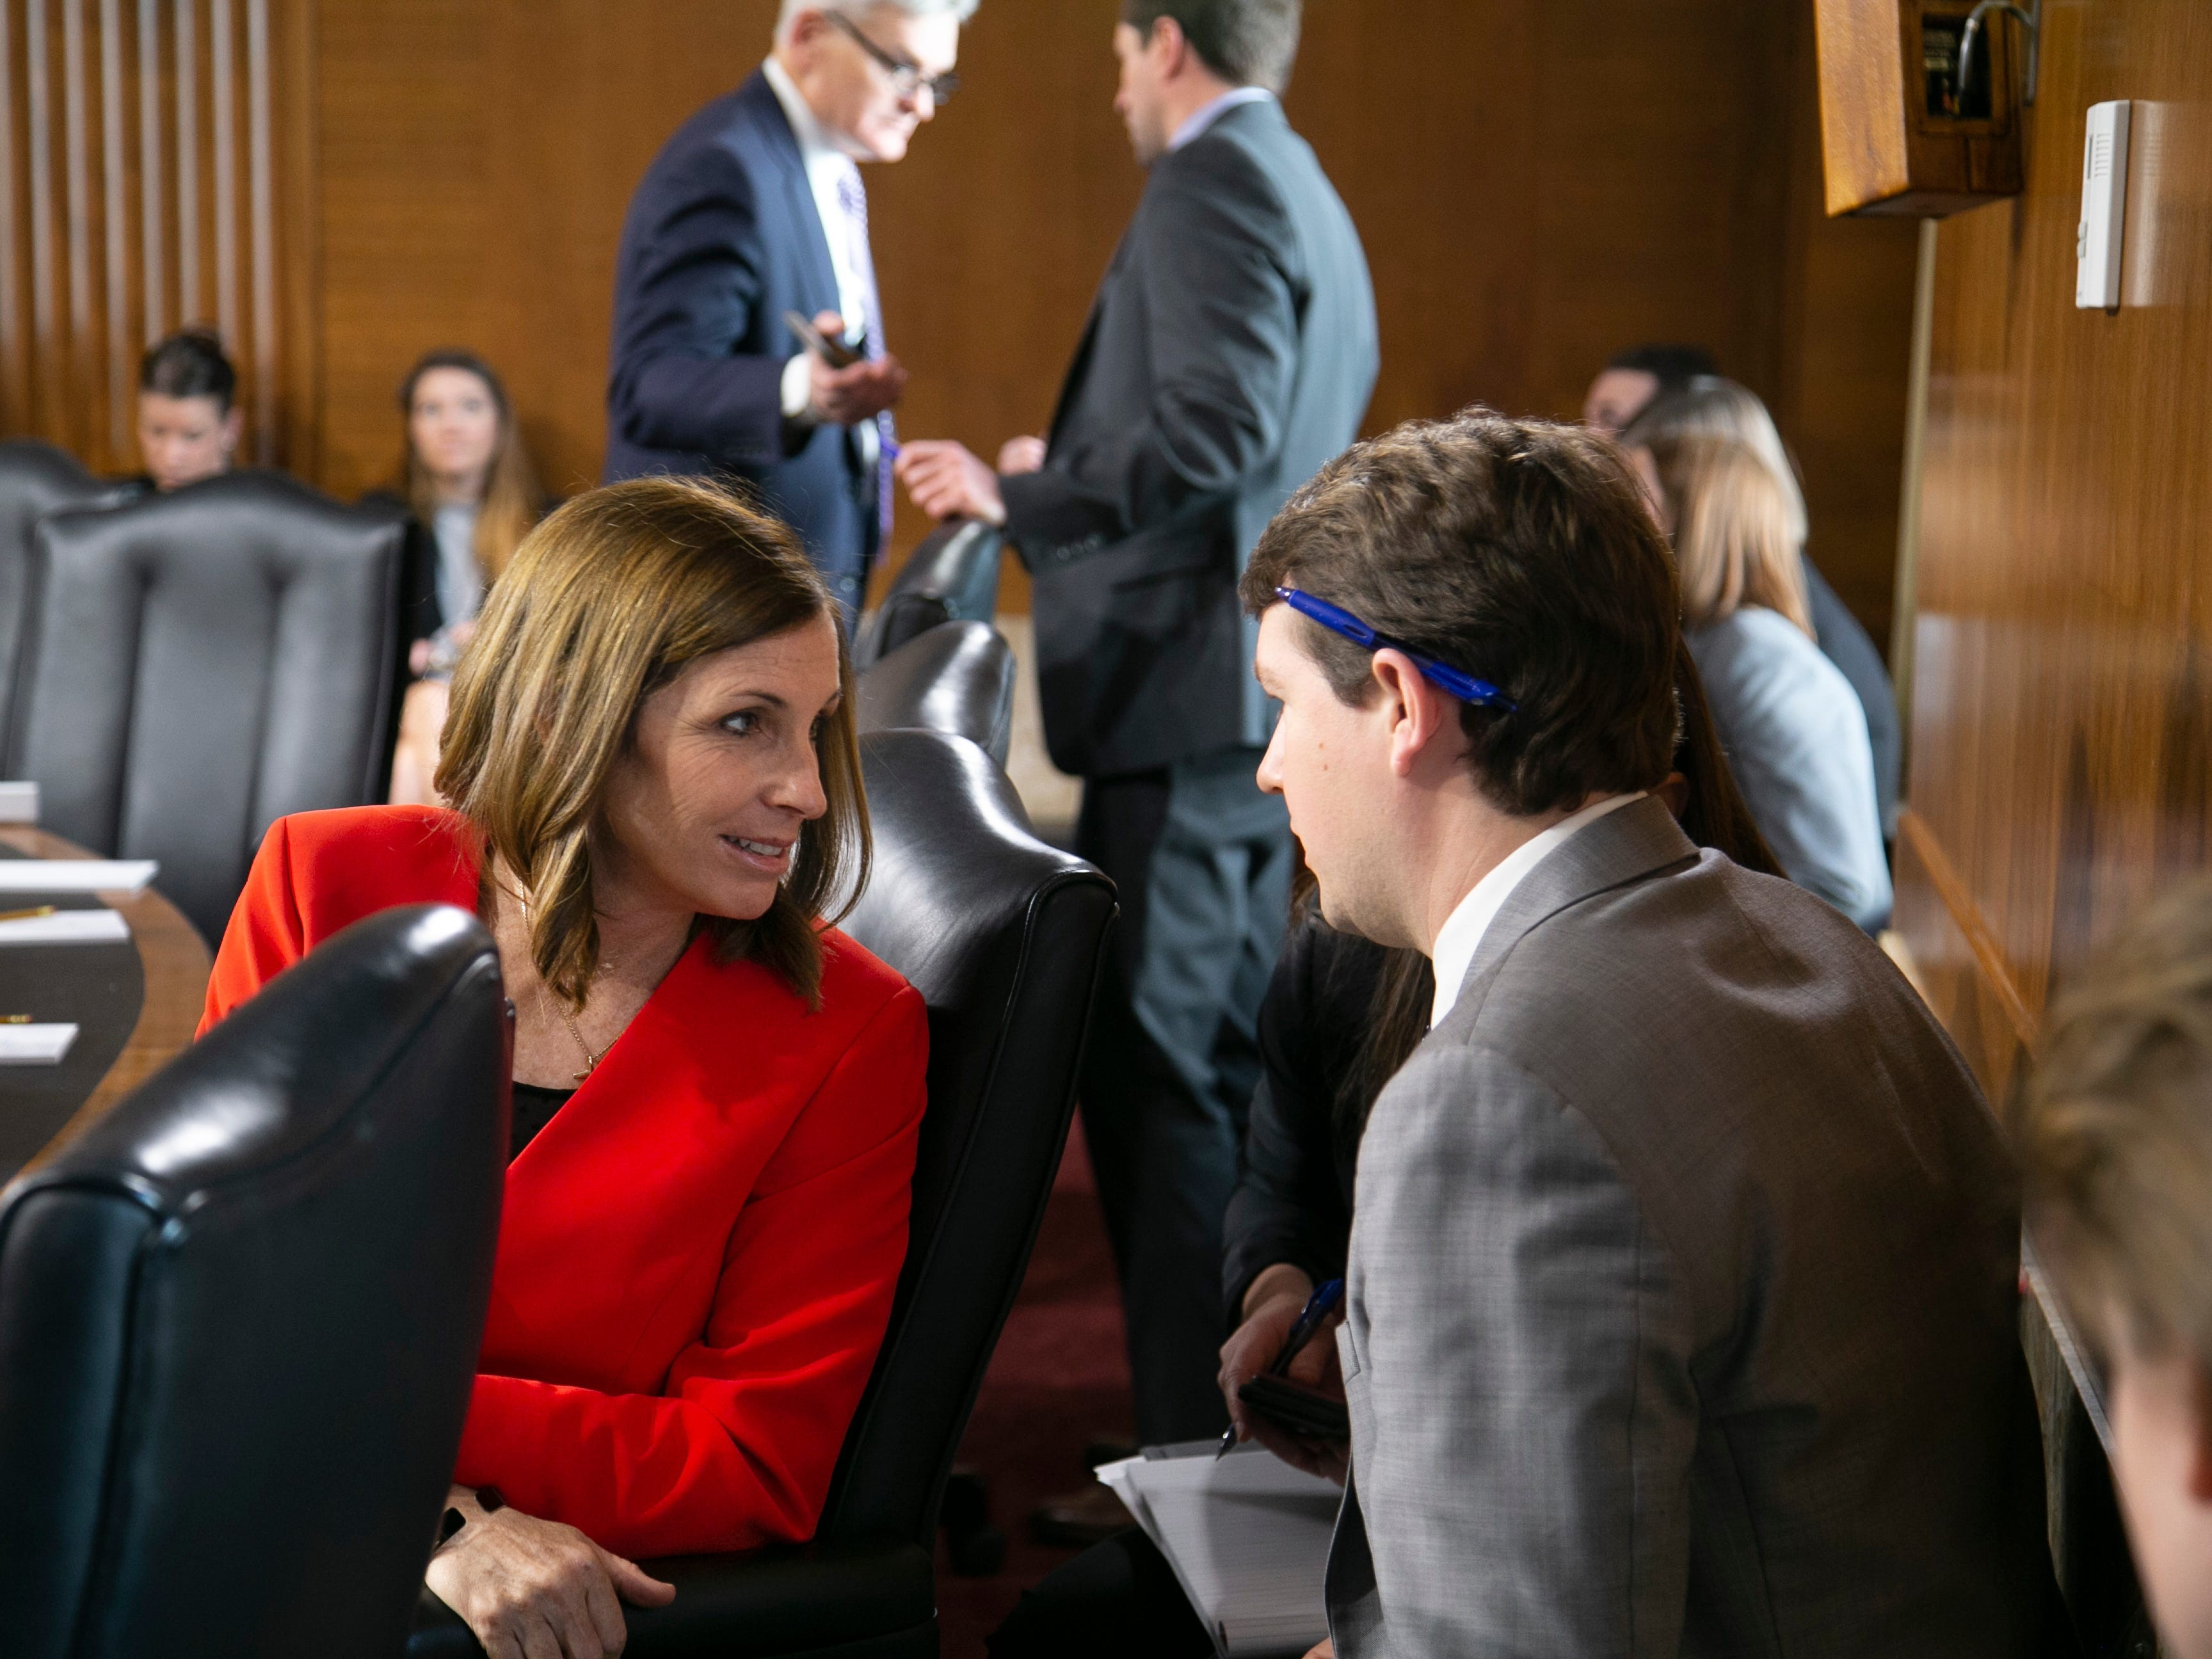 U.S. Sen. Martha McSally speaks to an aide during the U.S. Senate Committee on Energy and Natural Resources hearing at the U.S. Capitol in Washington D.C. on Feb. 5, 2019.